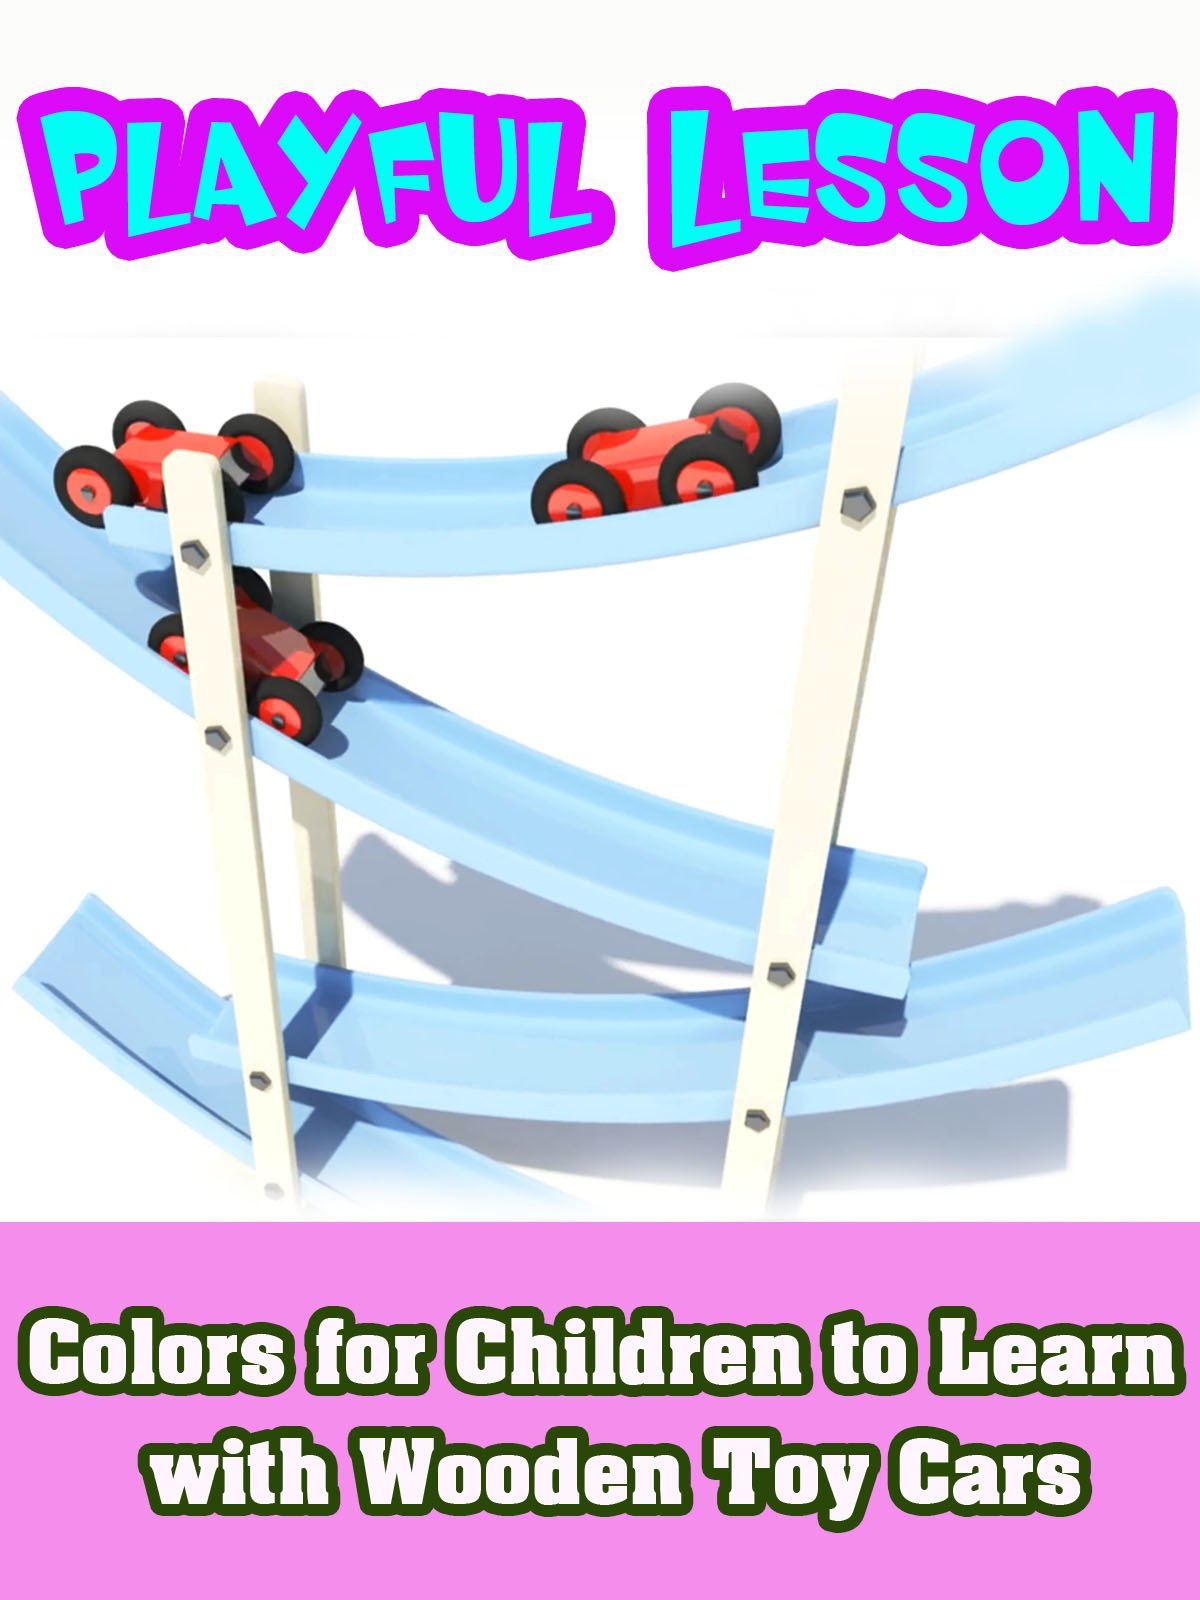 Colors for Children to Learn with Wooden Toy Cars